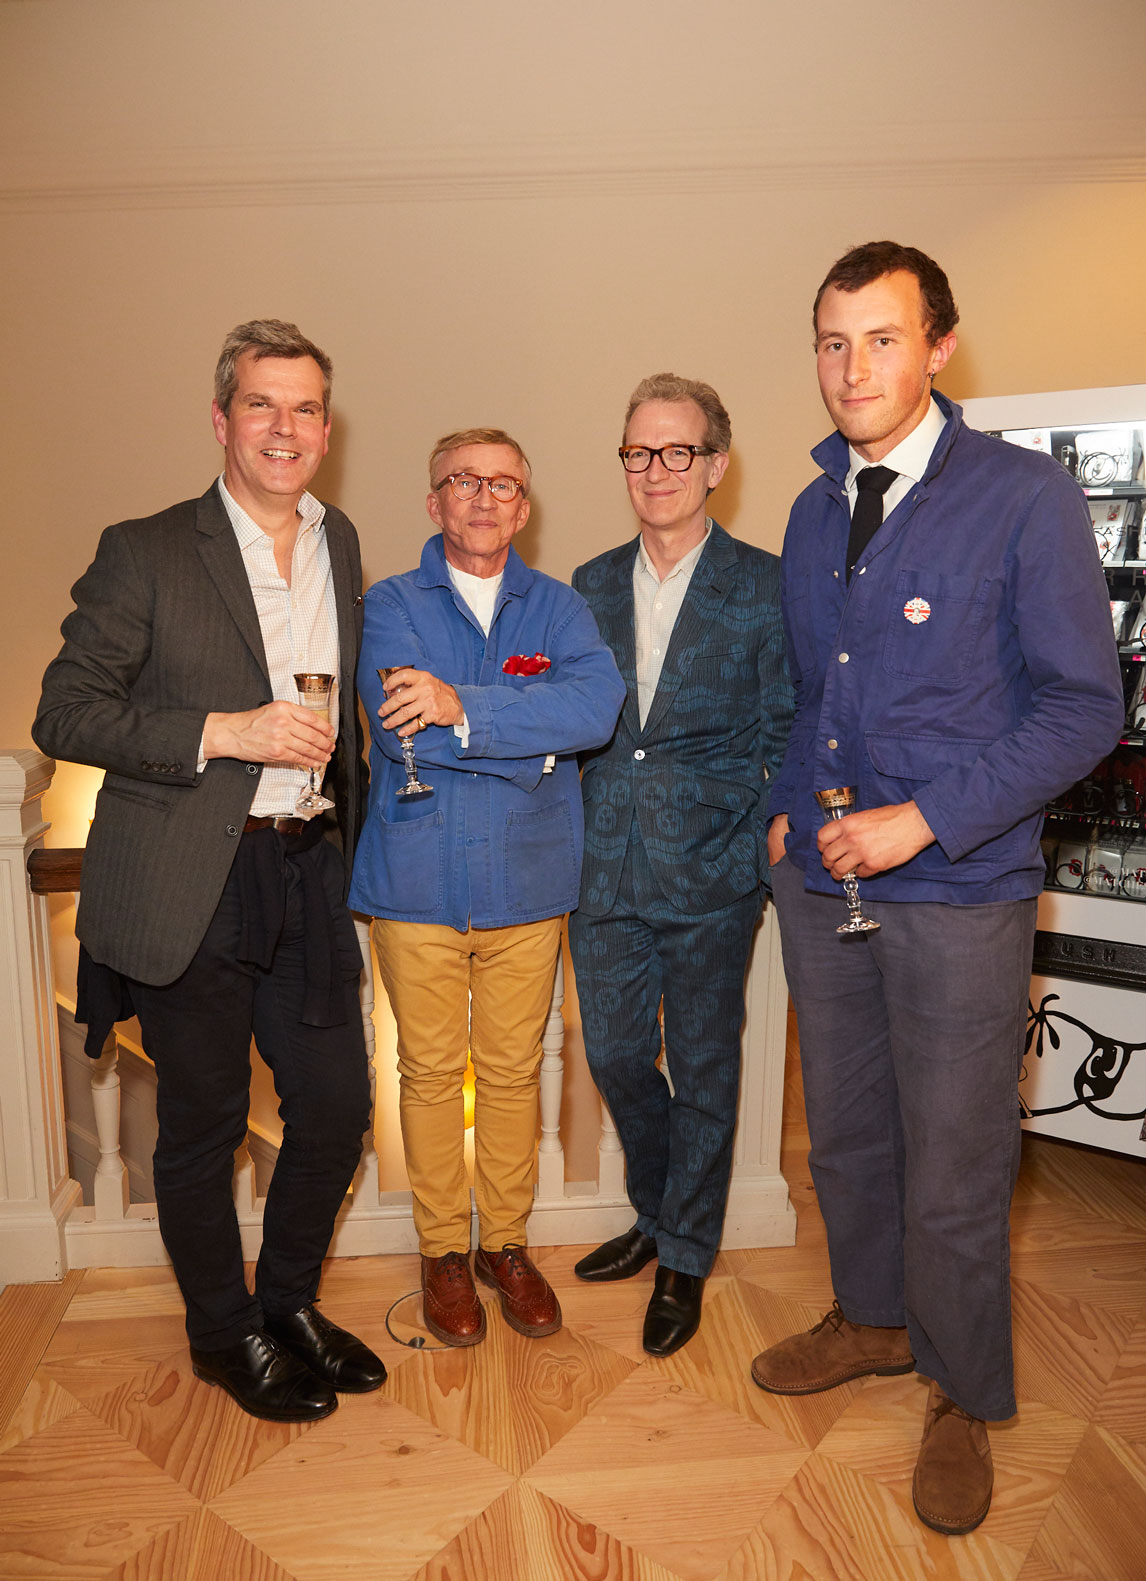 Ben Pentreath and Jasper Conran at the Interiors launch at MATCHESFASHION.COM in London